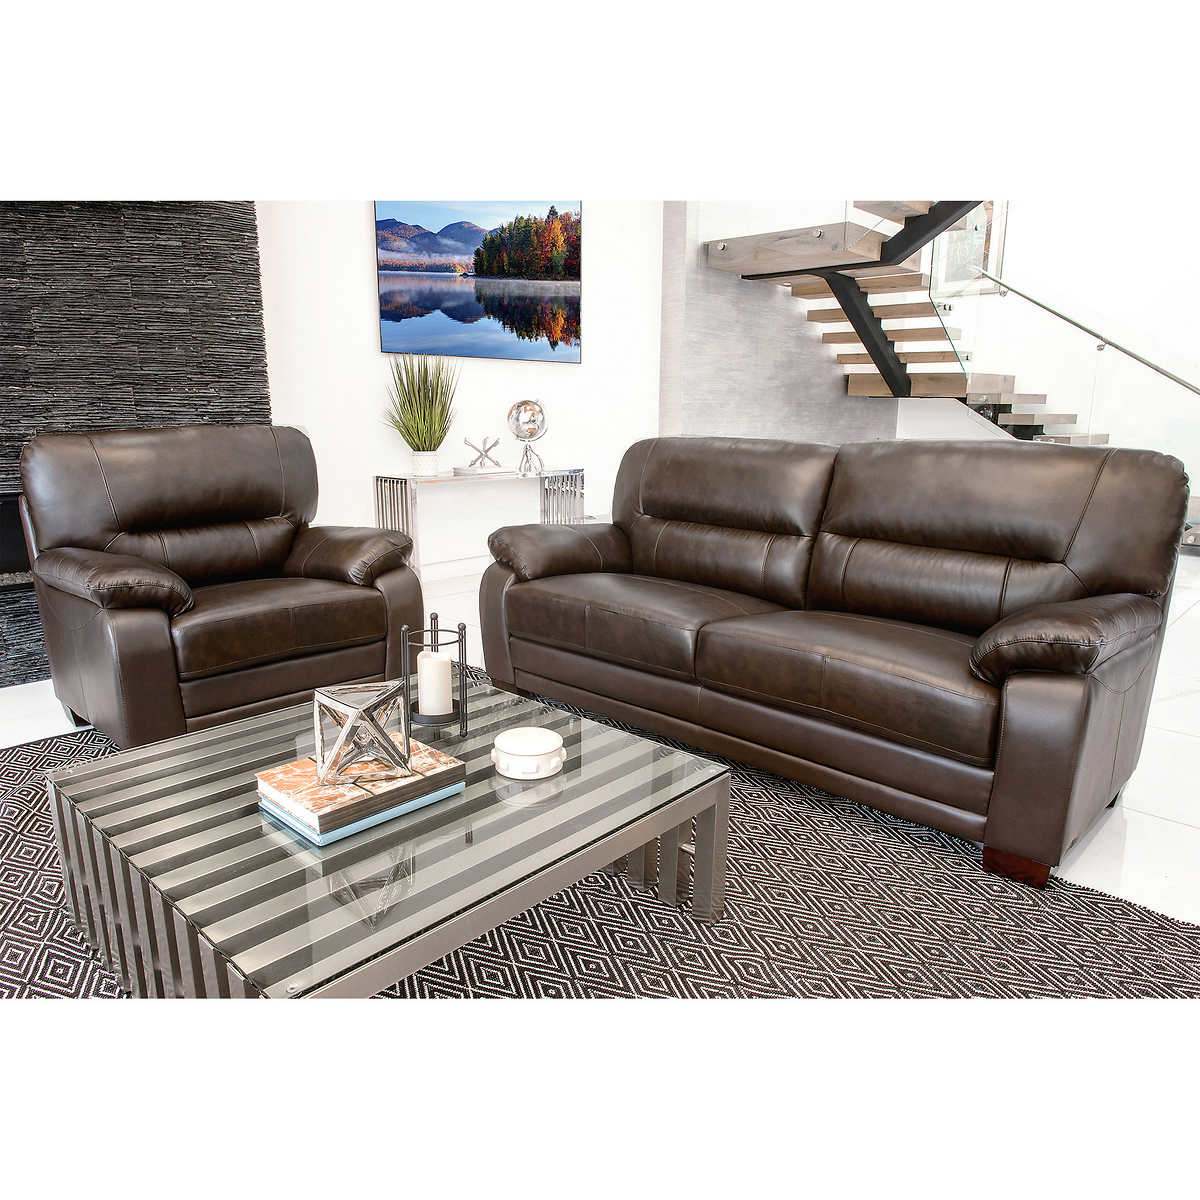 Click to Zoom. Brentwood 2 piece Top Grain Leather Sofa and Chair Living Room Set